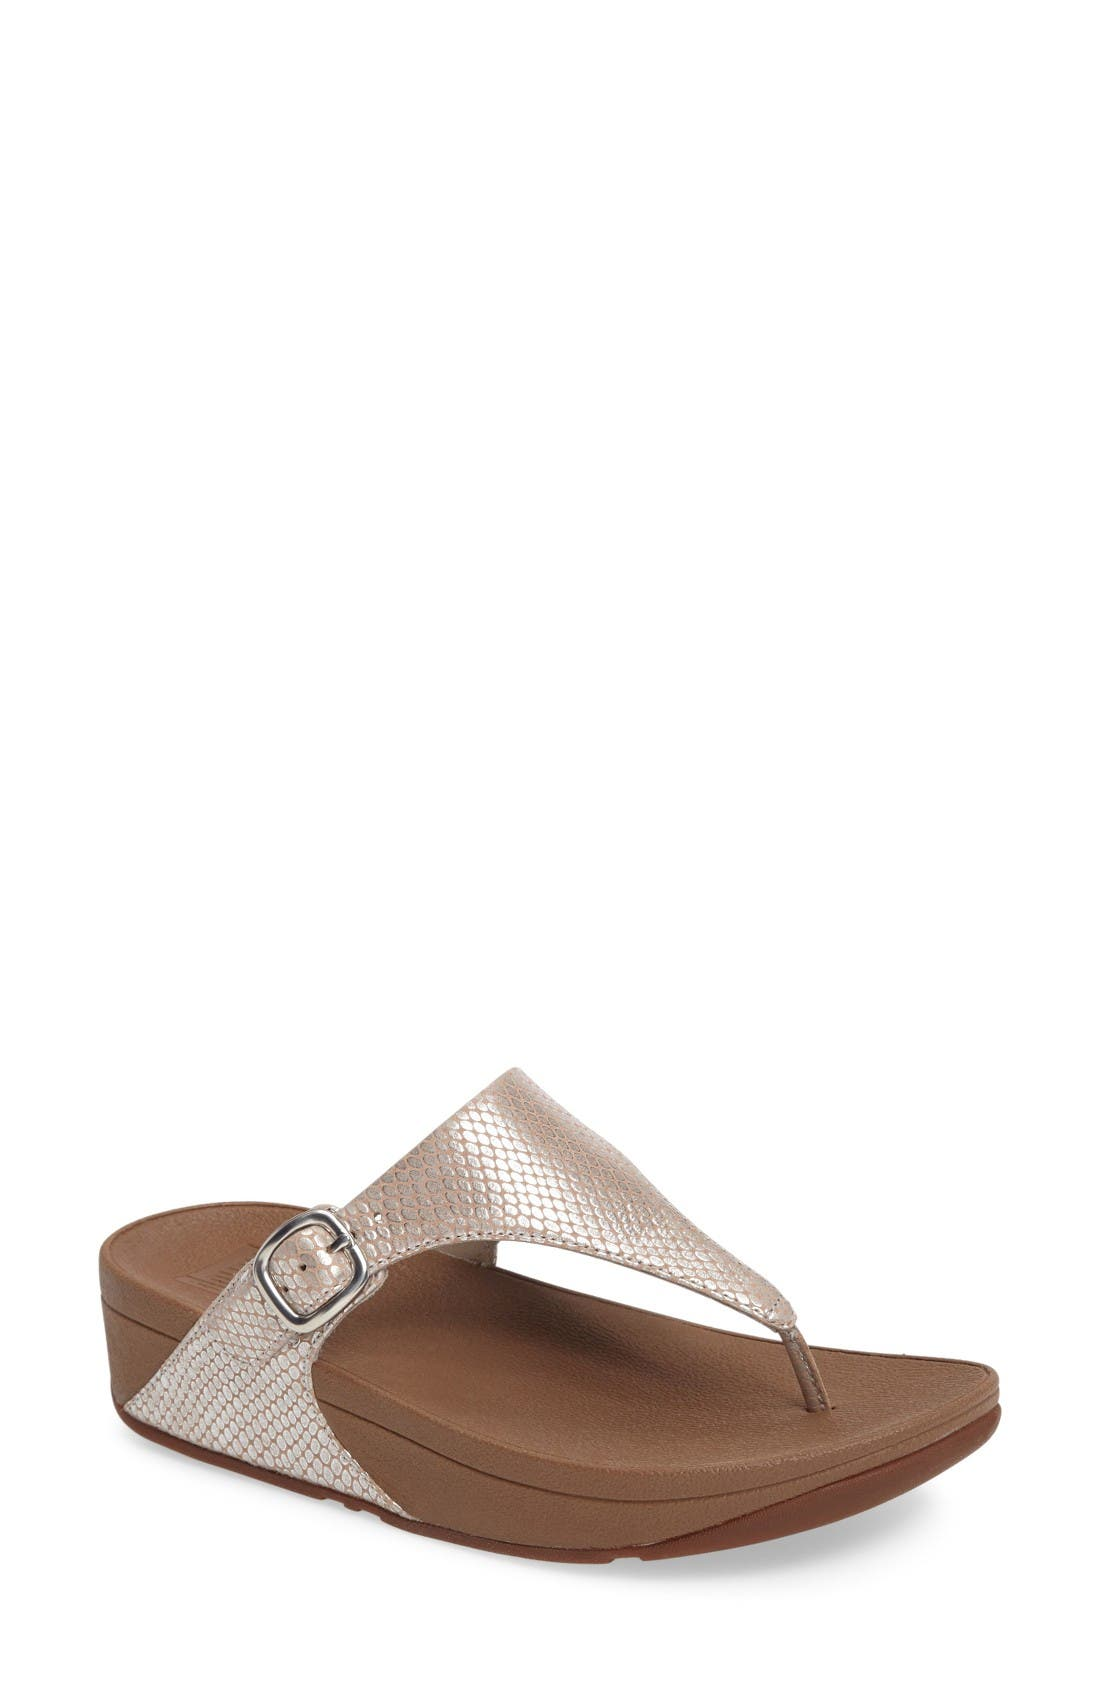 Main Image - FitFlop The Skinny Flip Flop (Women)